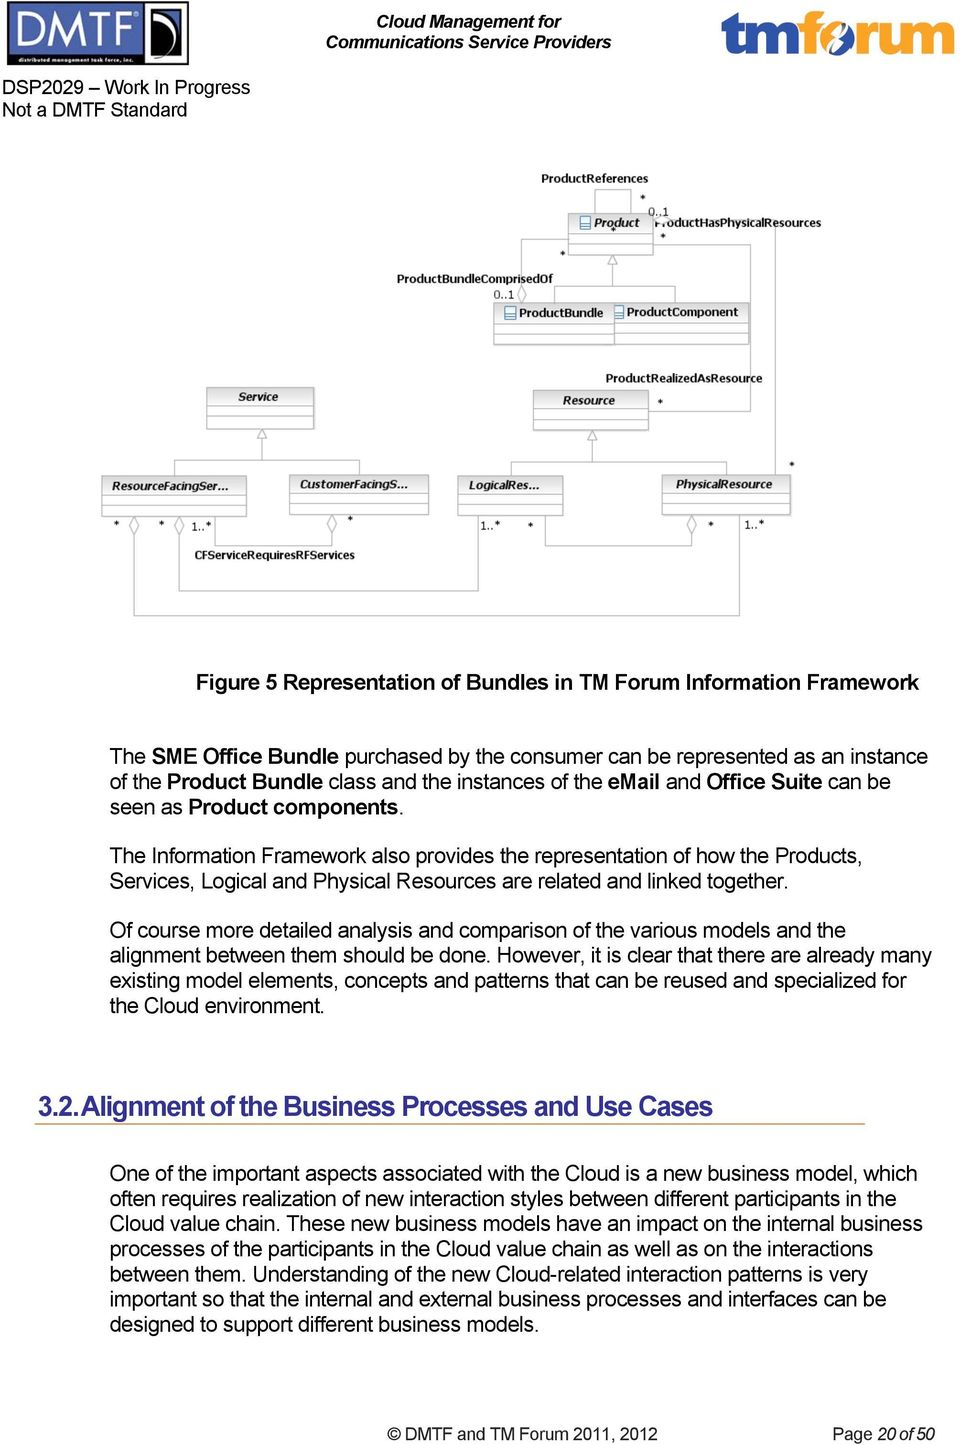 The Information Framework also provides the representation of how the Products, Services, Logical and Physical Resources are related and linked together.